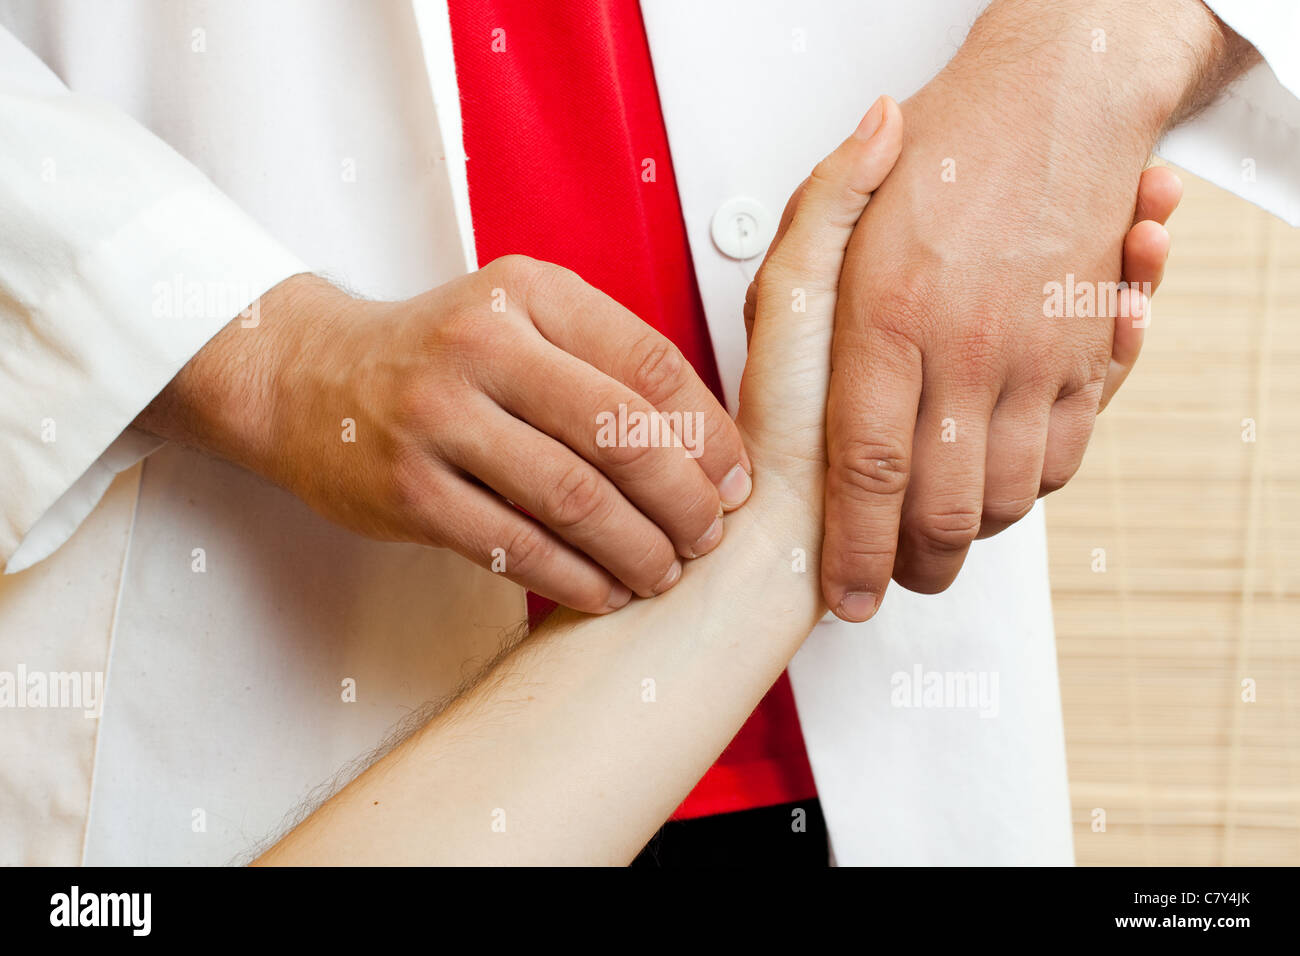 Doctor checking a patients pulse - Stock Image